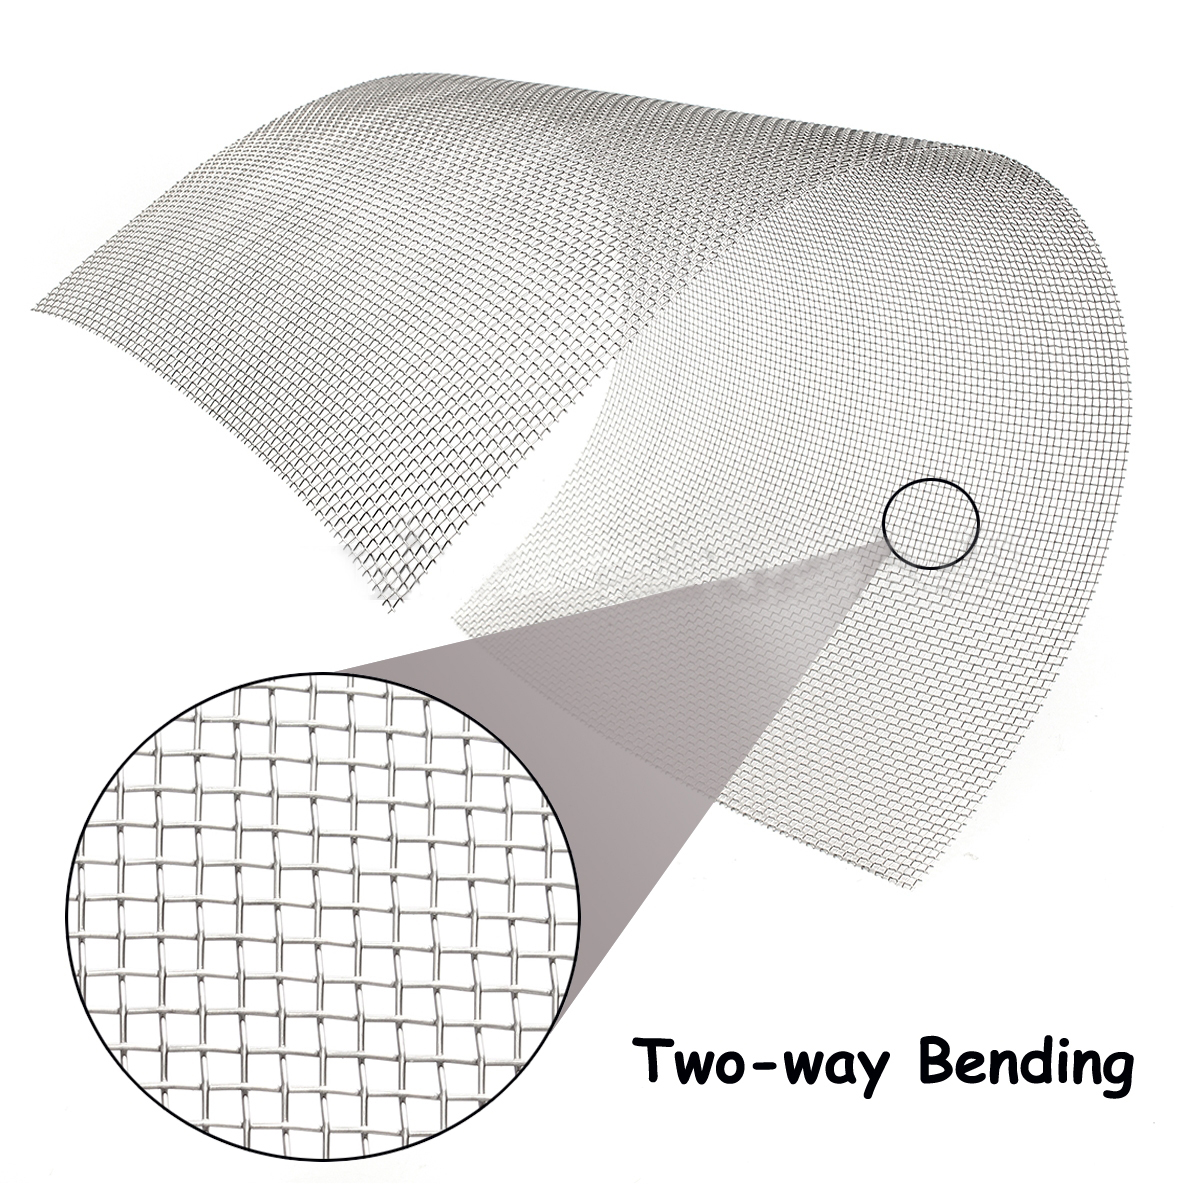 Mayitr 1pc 304 Stainless Steel Mesh 8 Mesh Wire Cloth Screen 30cmx60cm For Cooking Nets 1 roll stainless steel woven wire cloth screen filter 120 mesh 125 micron 30x90cm with corrosion resistance